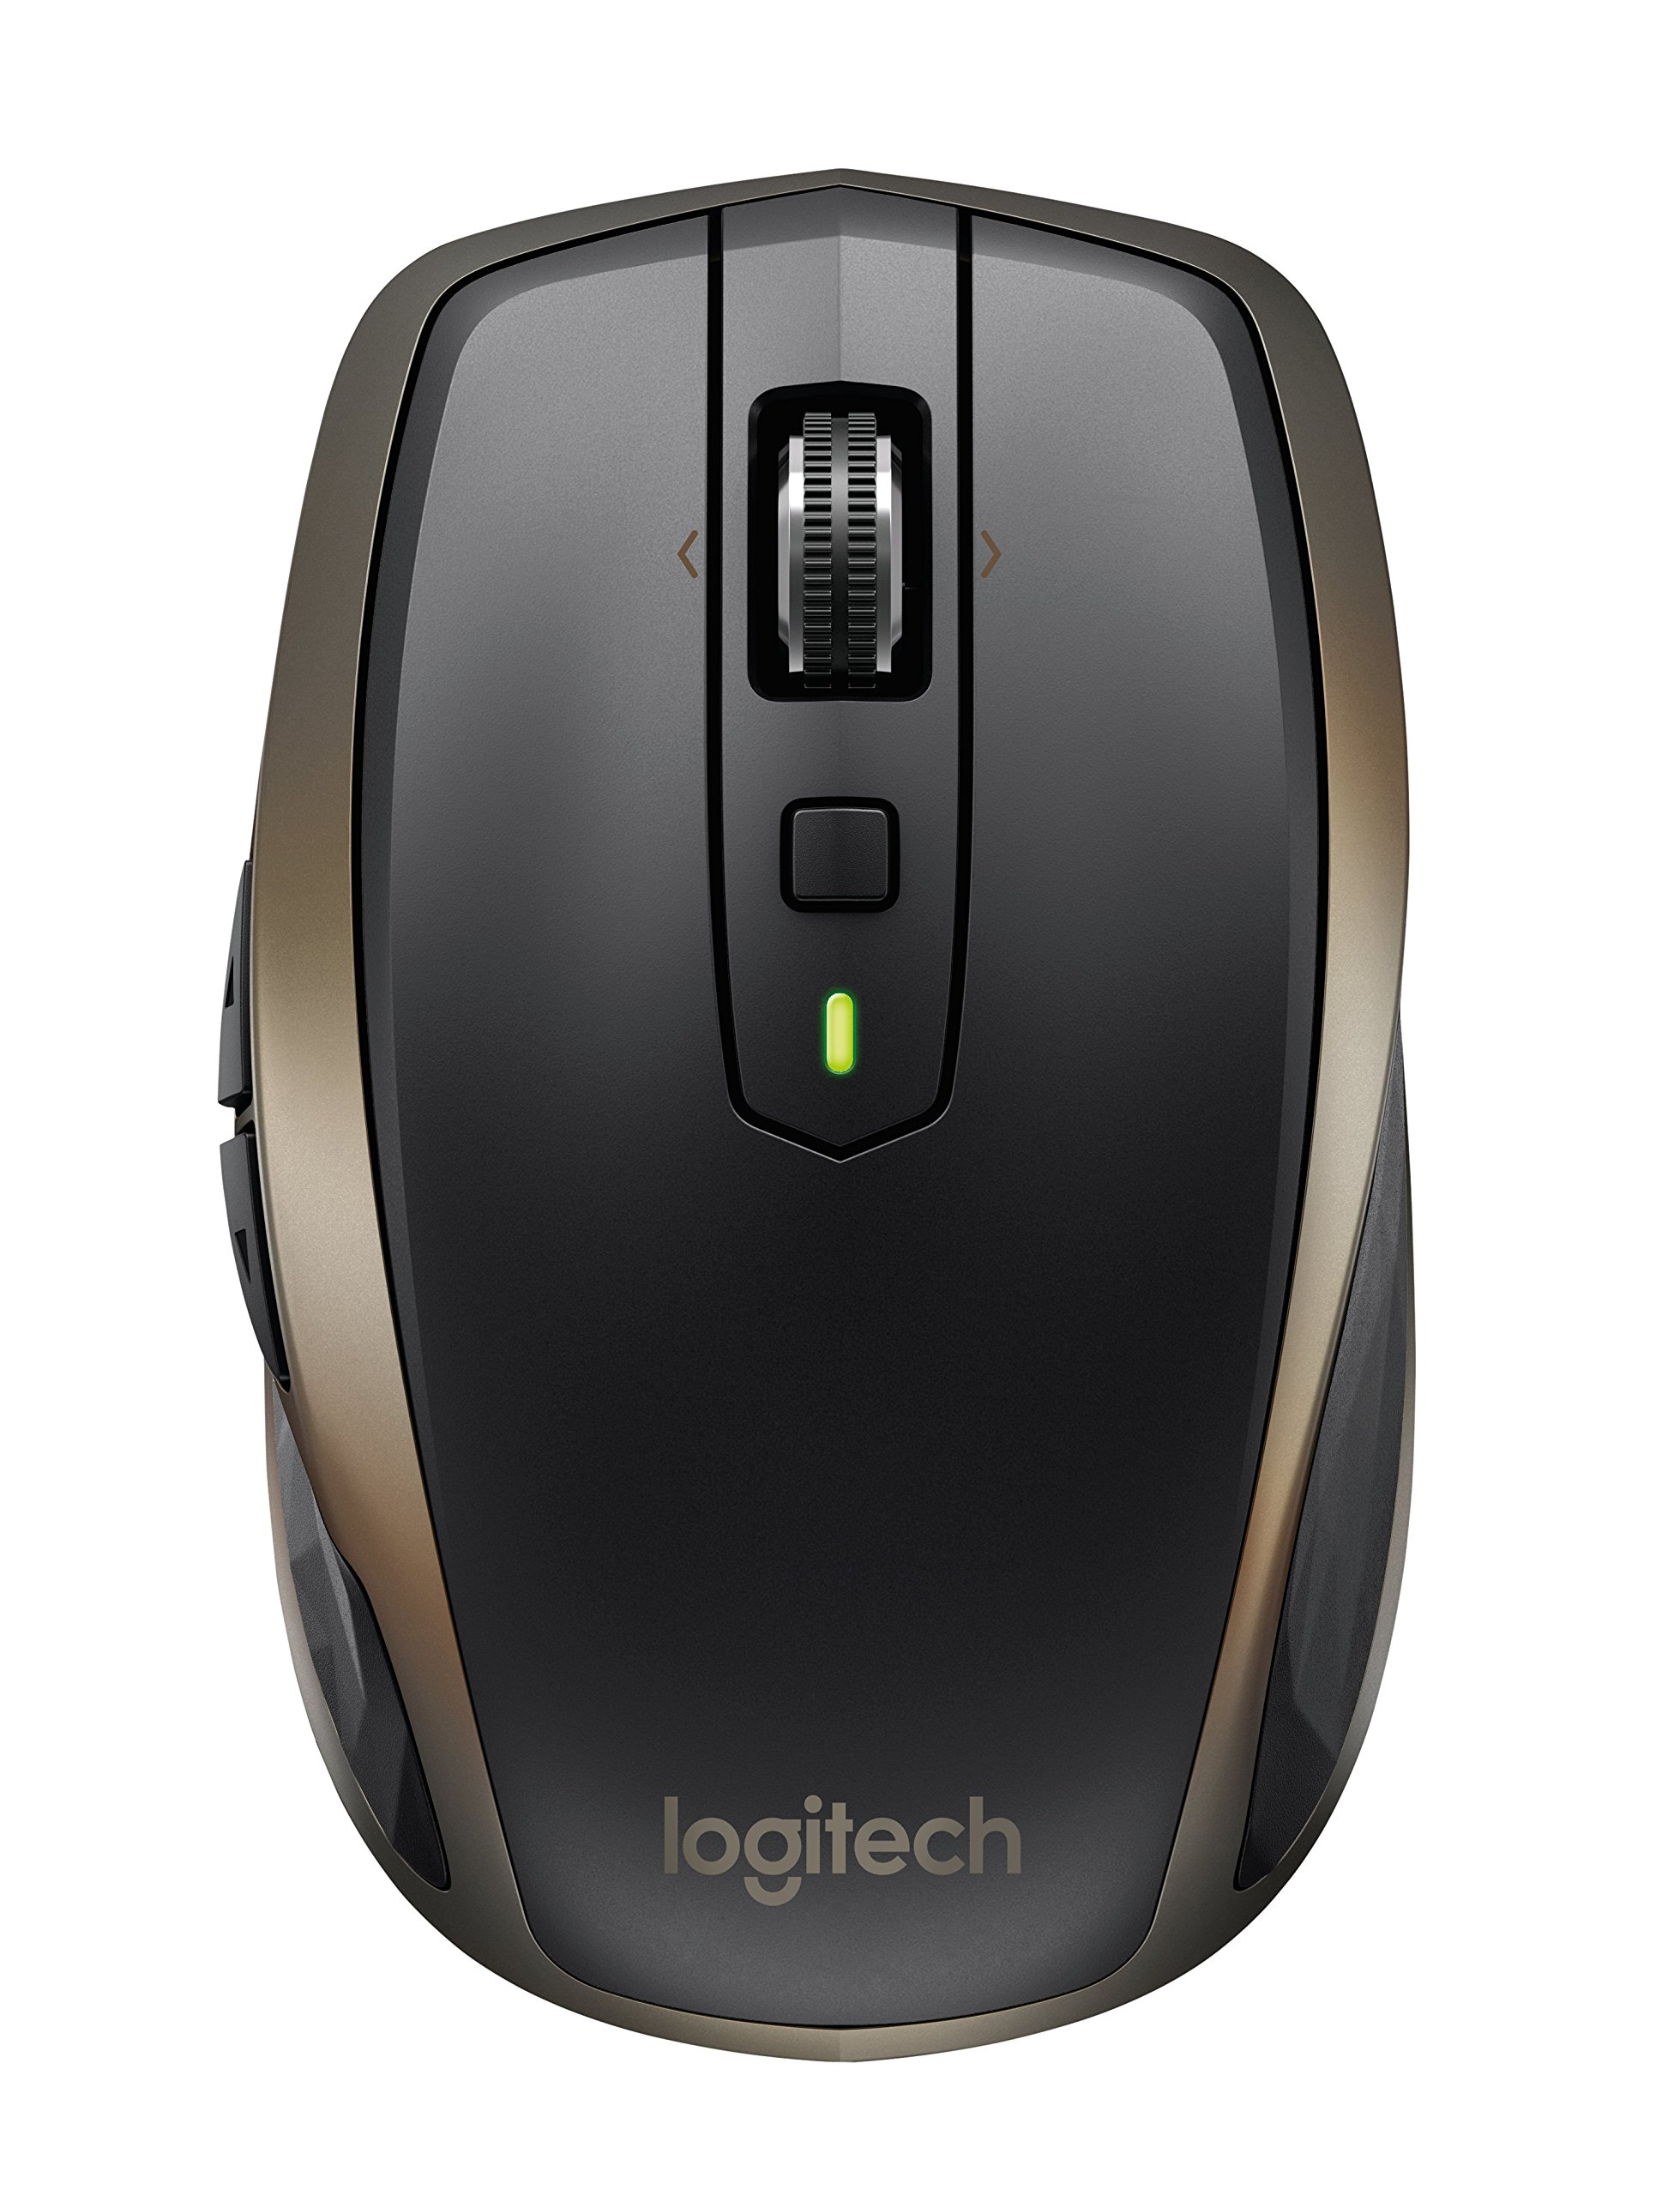 로지텍 MX 애니웨어 2 무선 마우스 Logitech MX Anywhere 2 Wireless Mouse – Use On Any Surface, Hyper-Fast Scrolling, Rechargeable, for Apple Mac or Microsoft Windows Computers and laptops, Meteorite